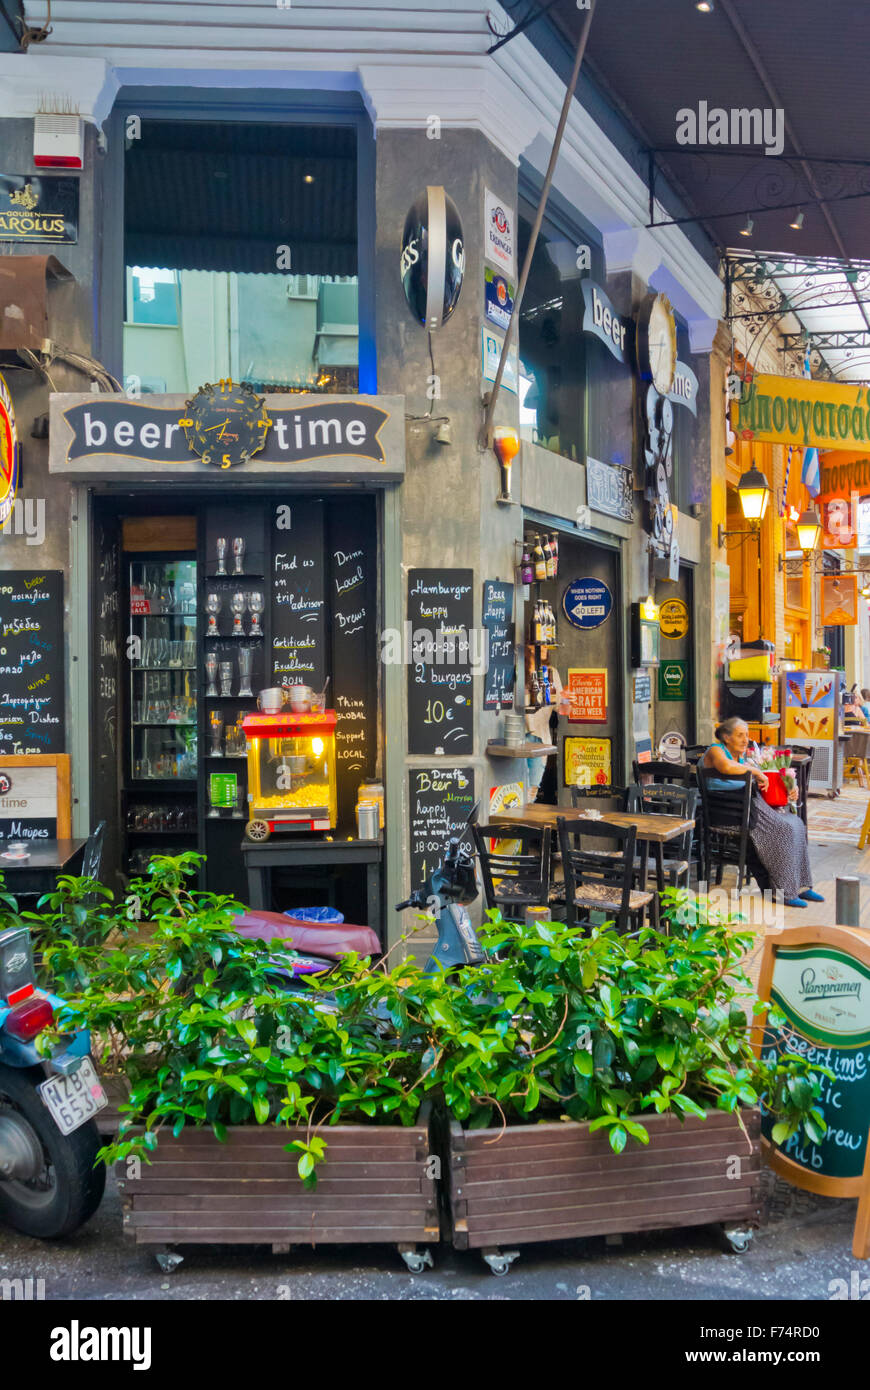 Beer Time pub, plateia Iroon, Heroes square, nightlife spot, Psyri district, Athens, Greece - Stock Image